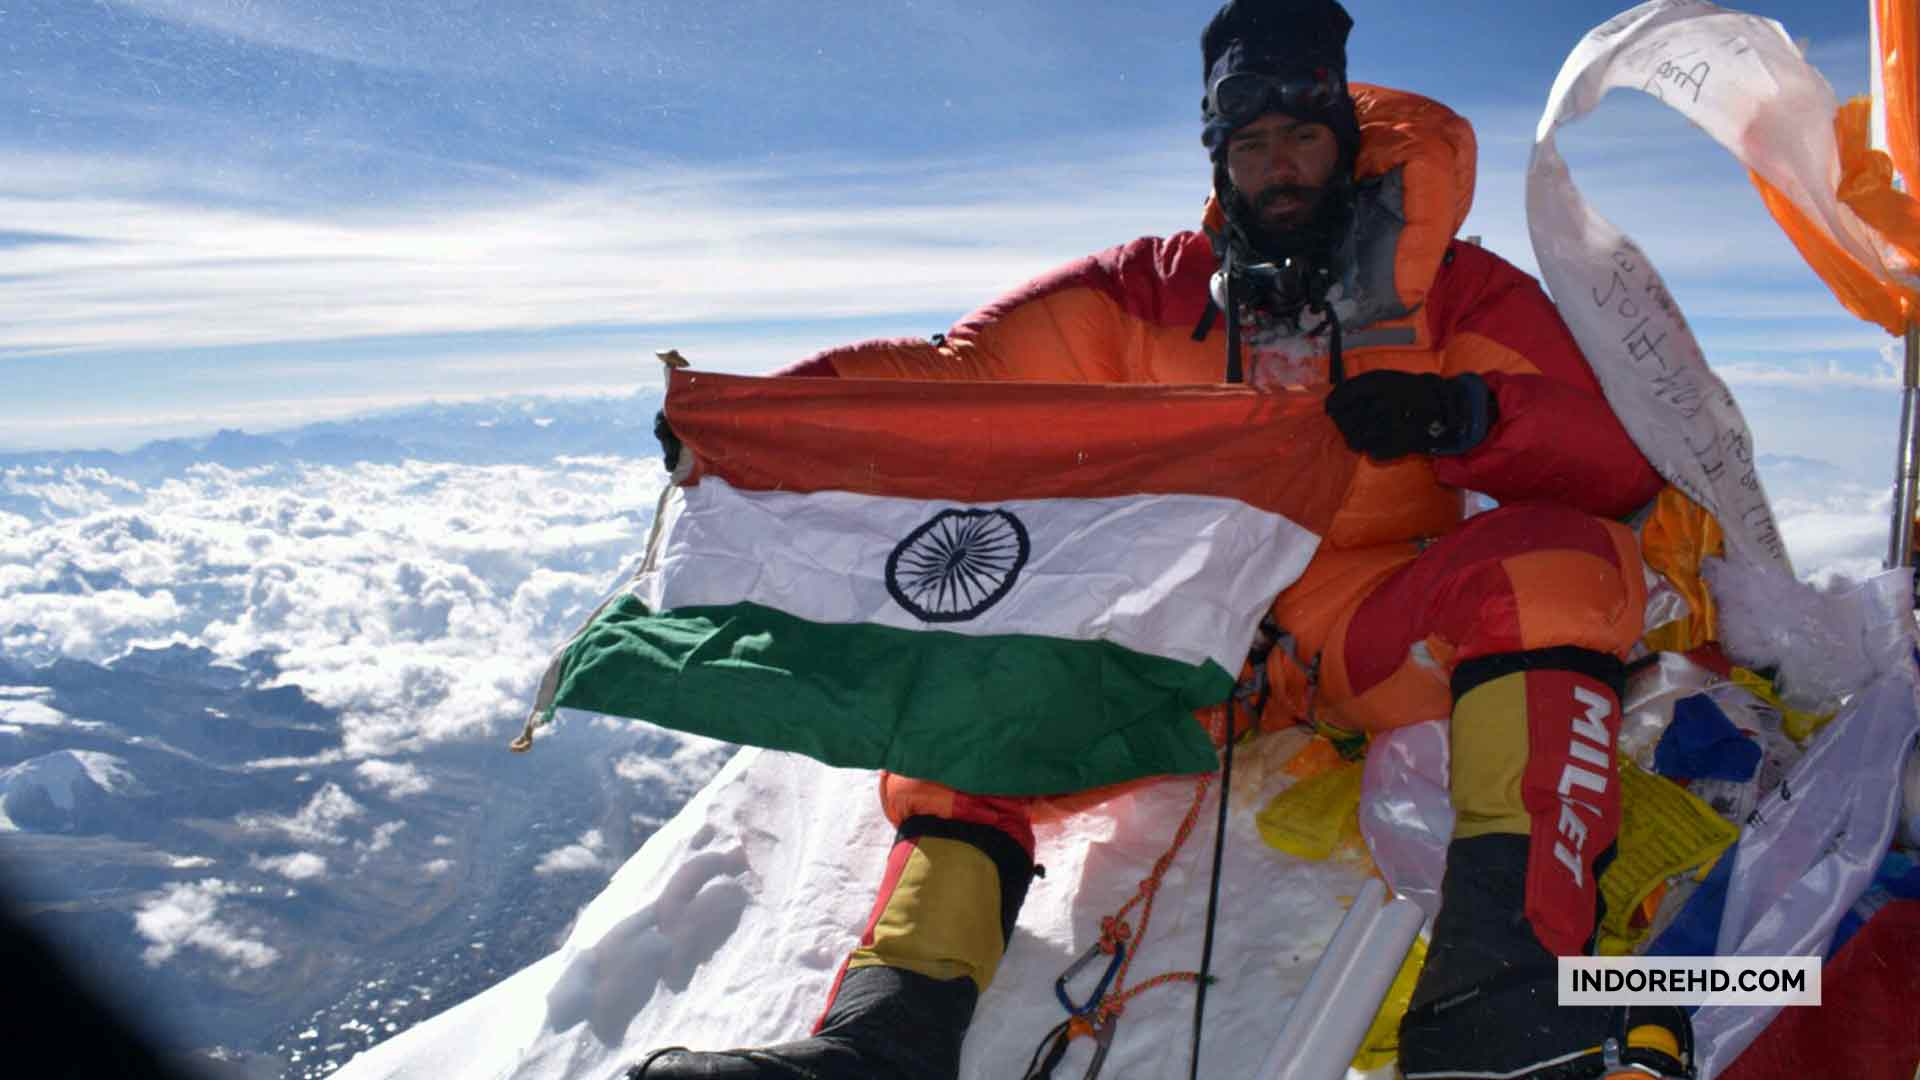 Mount-Everest-Climber-Indore-Story-IndoreHD